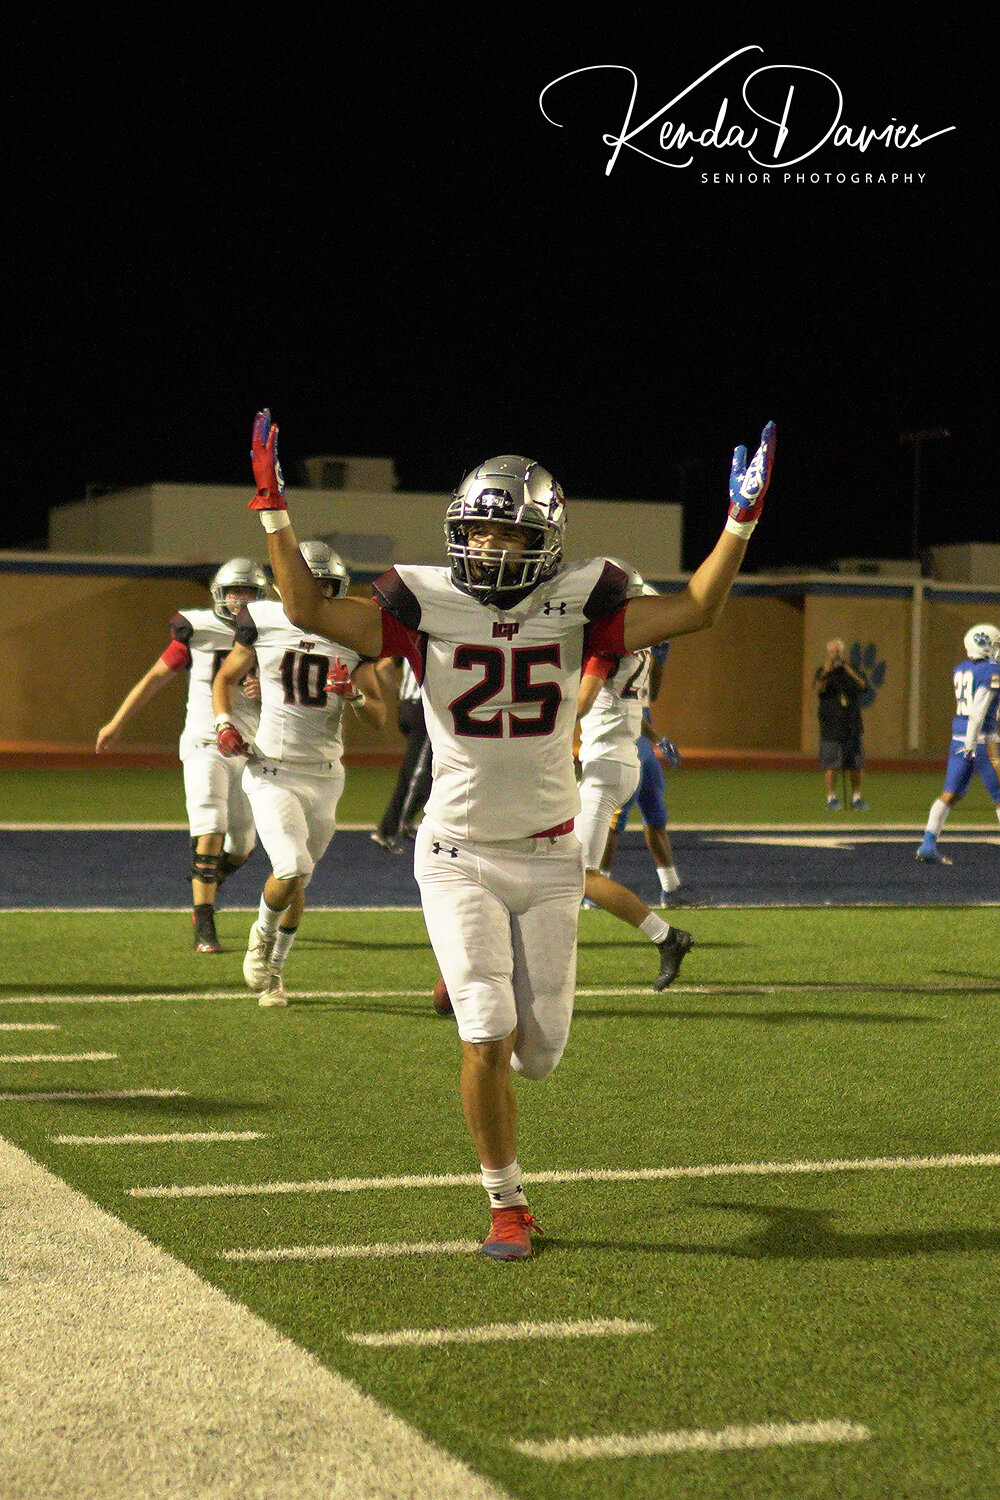 #25, Robert Mott celebrates after a TD!